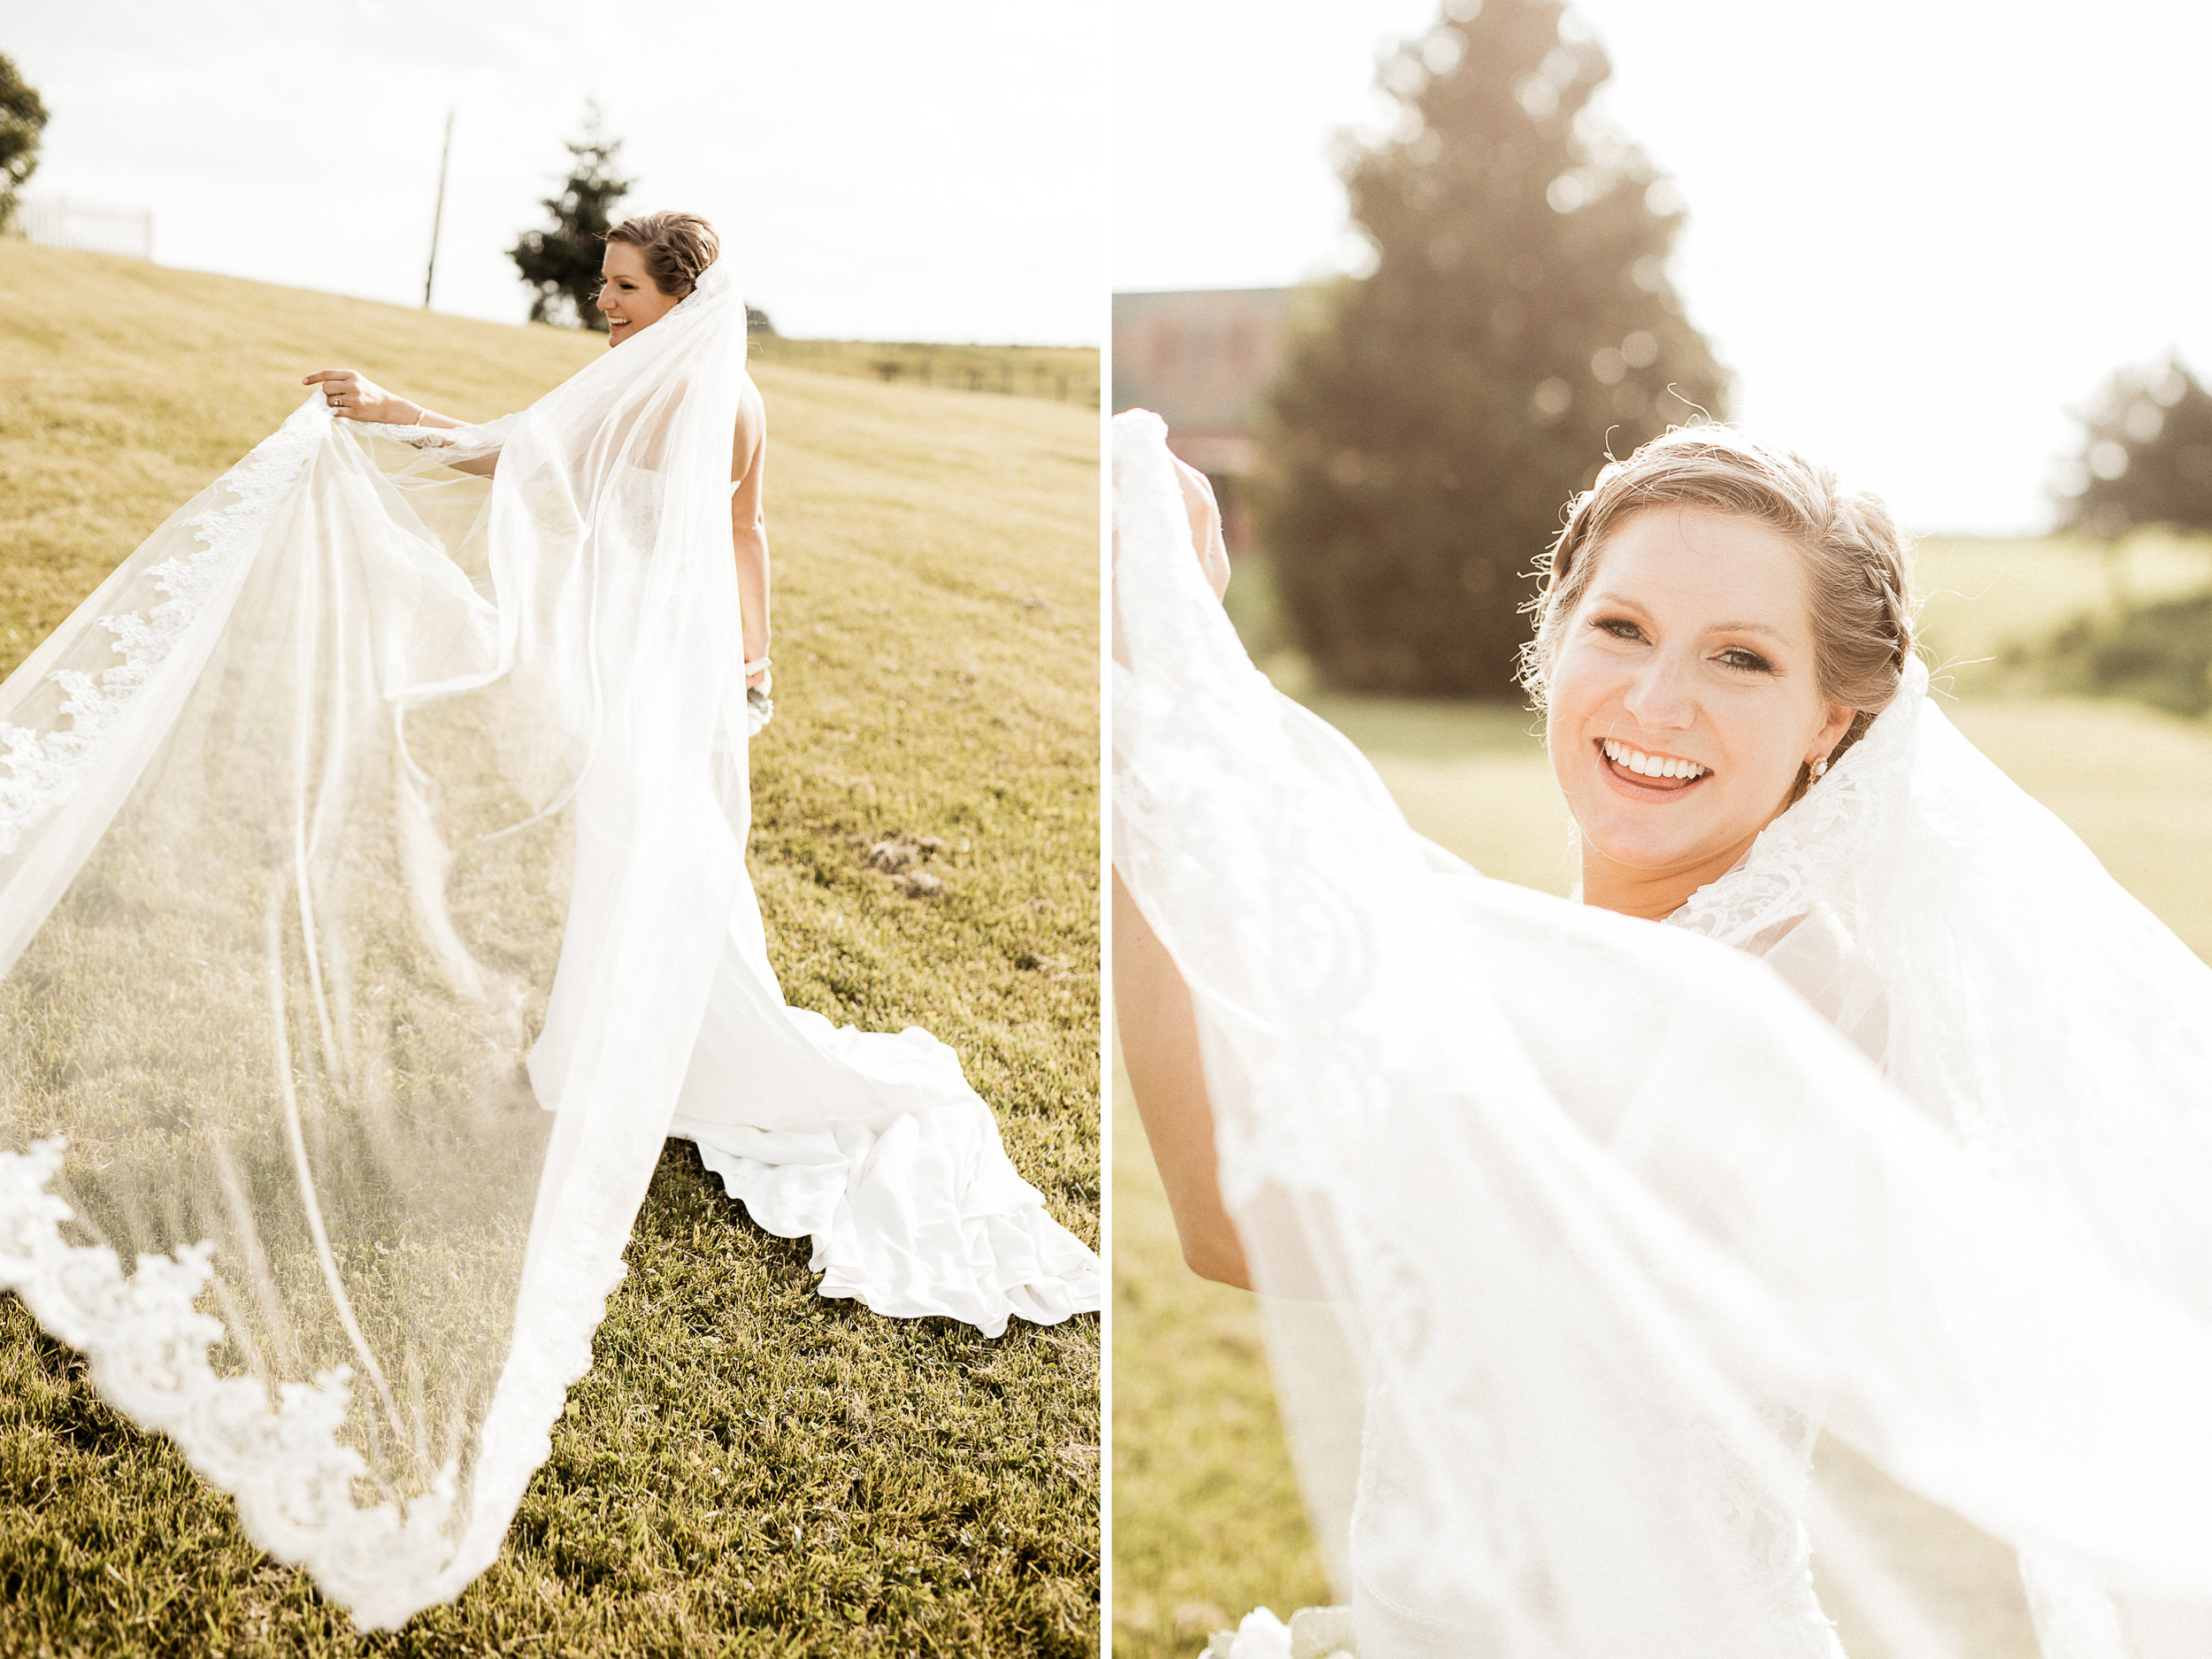 bride-cathedral-veil-picture.jpg